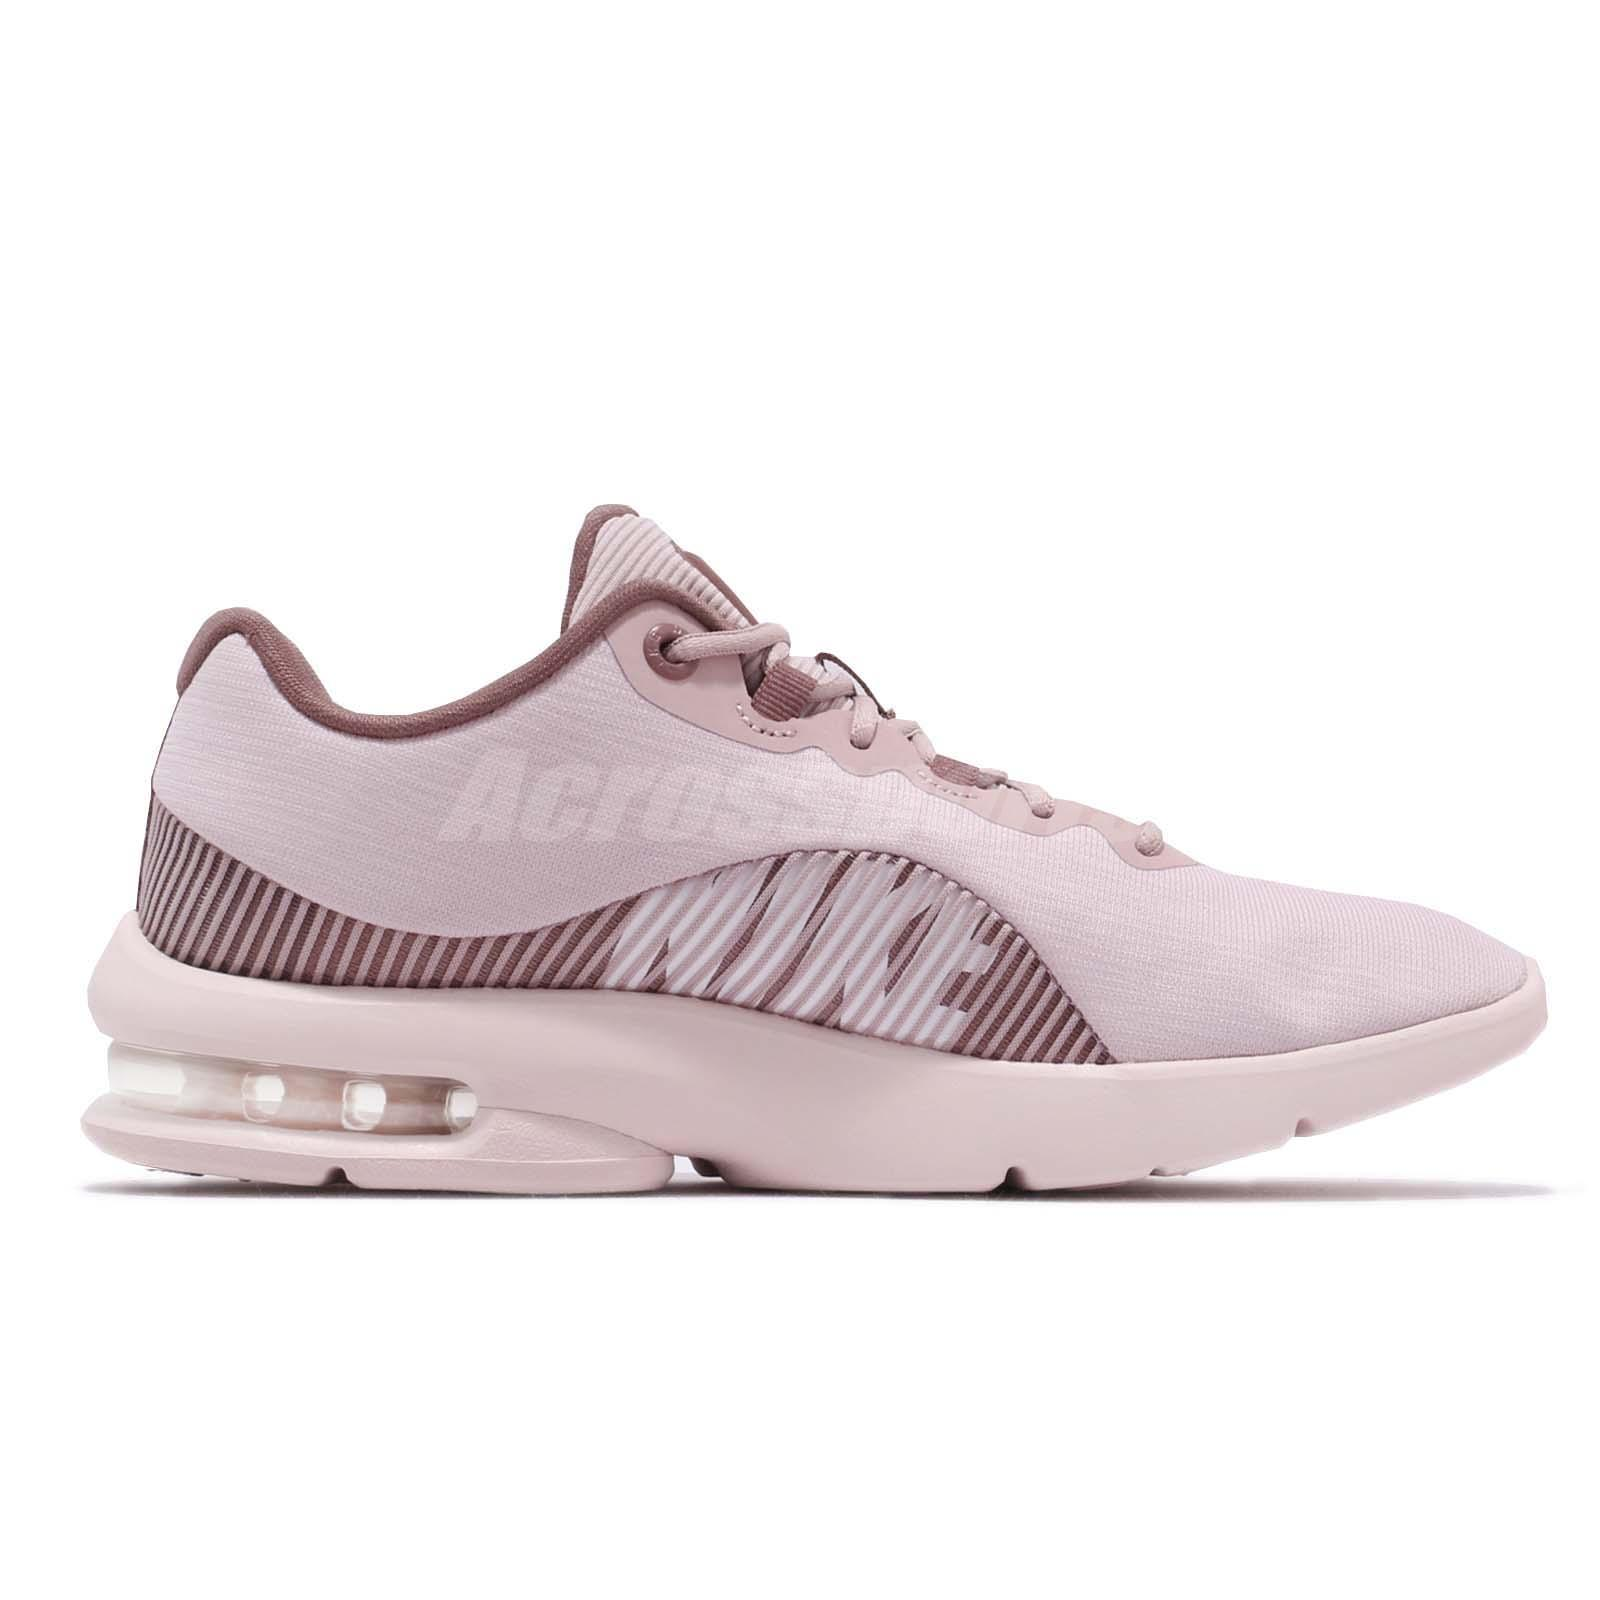 Nike Wmns Air Max Advantage 2 II Particle Rose Pink White Women ... 82f71f3d9